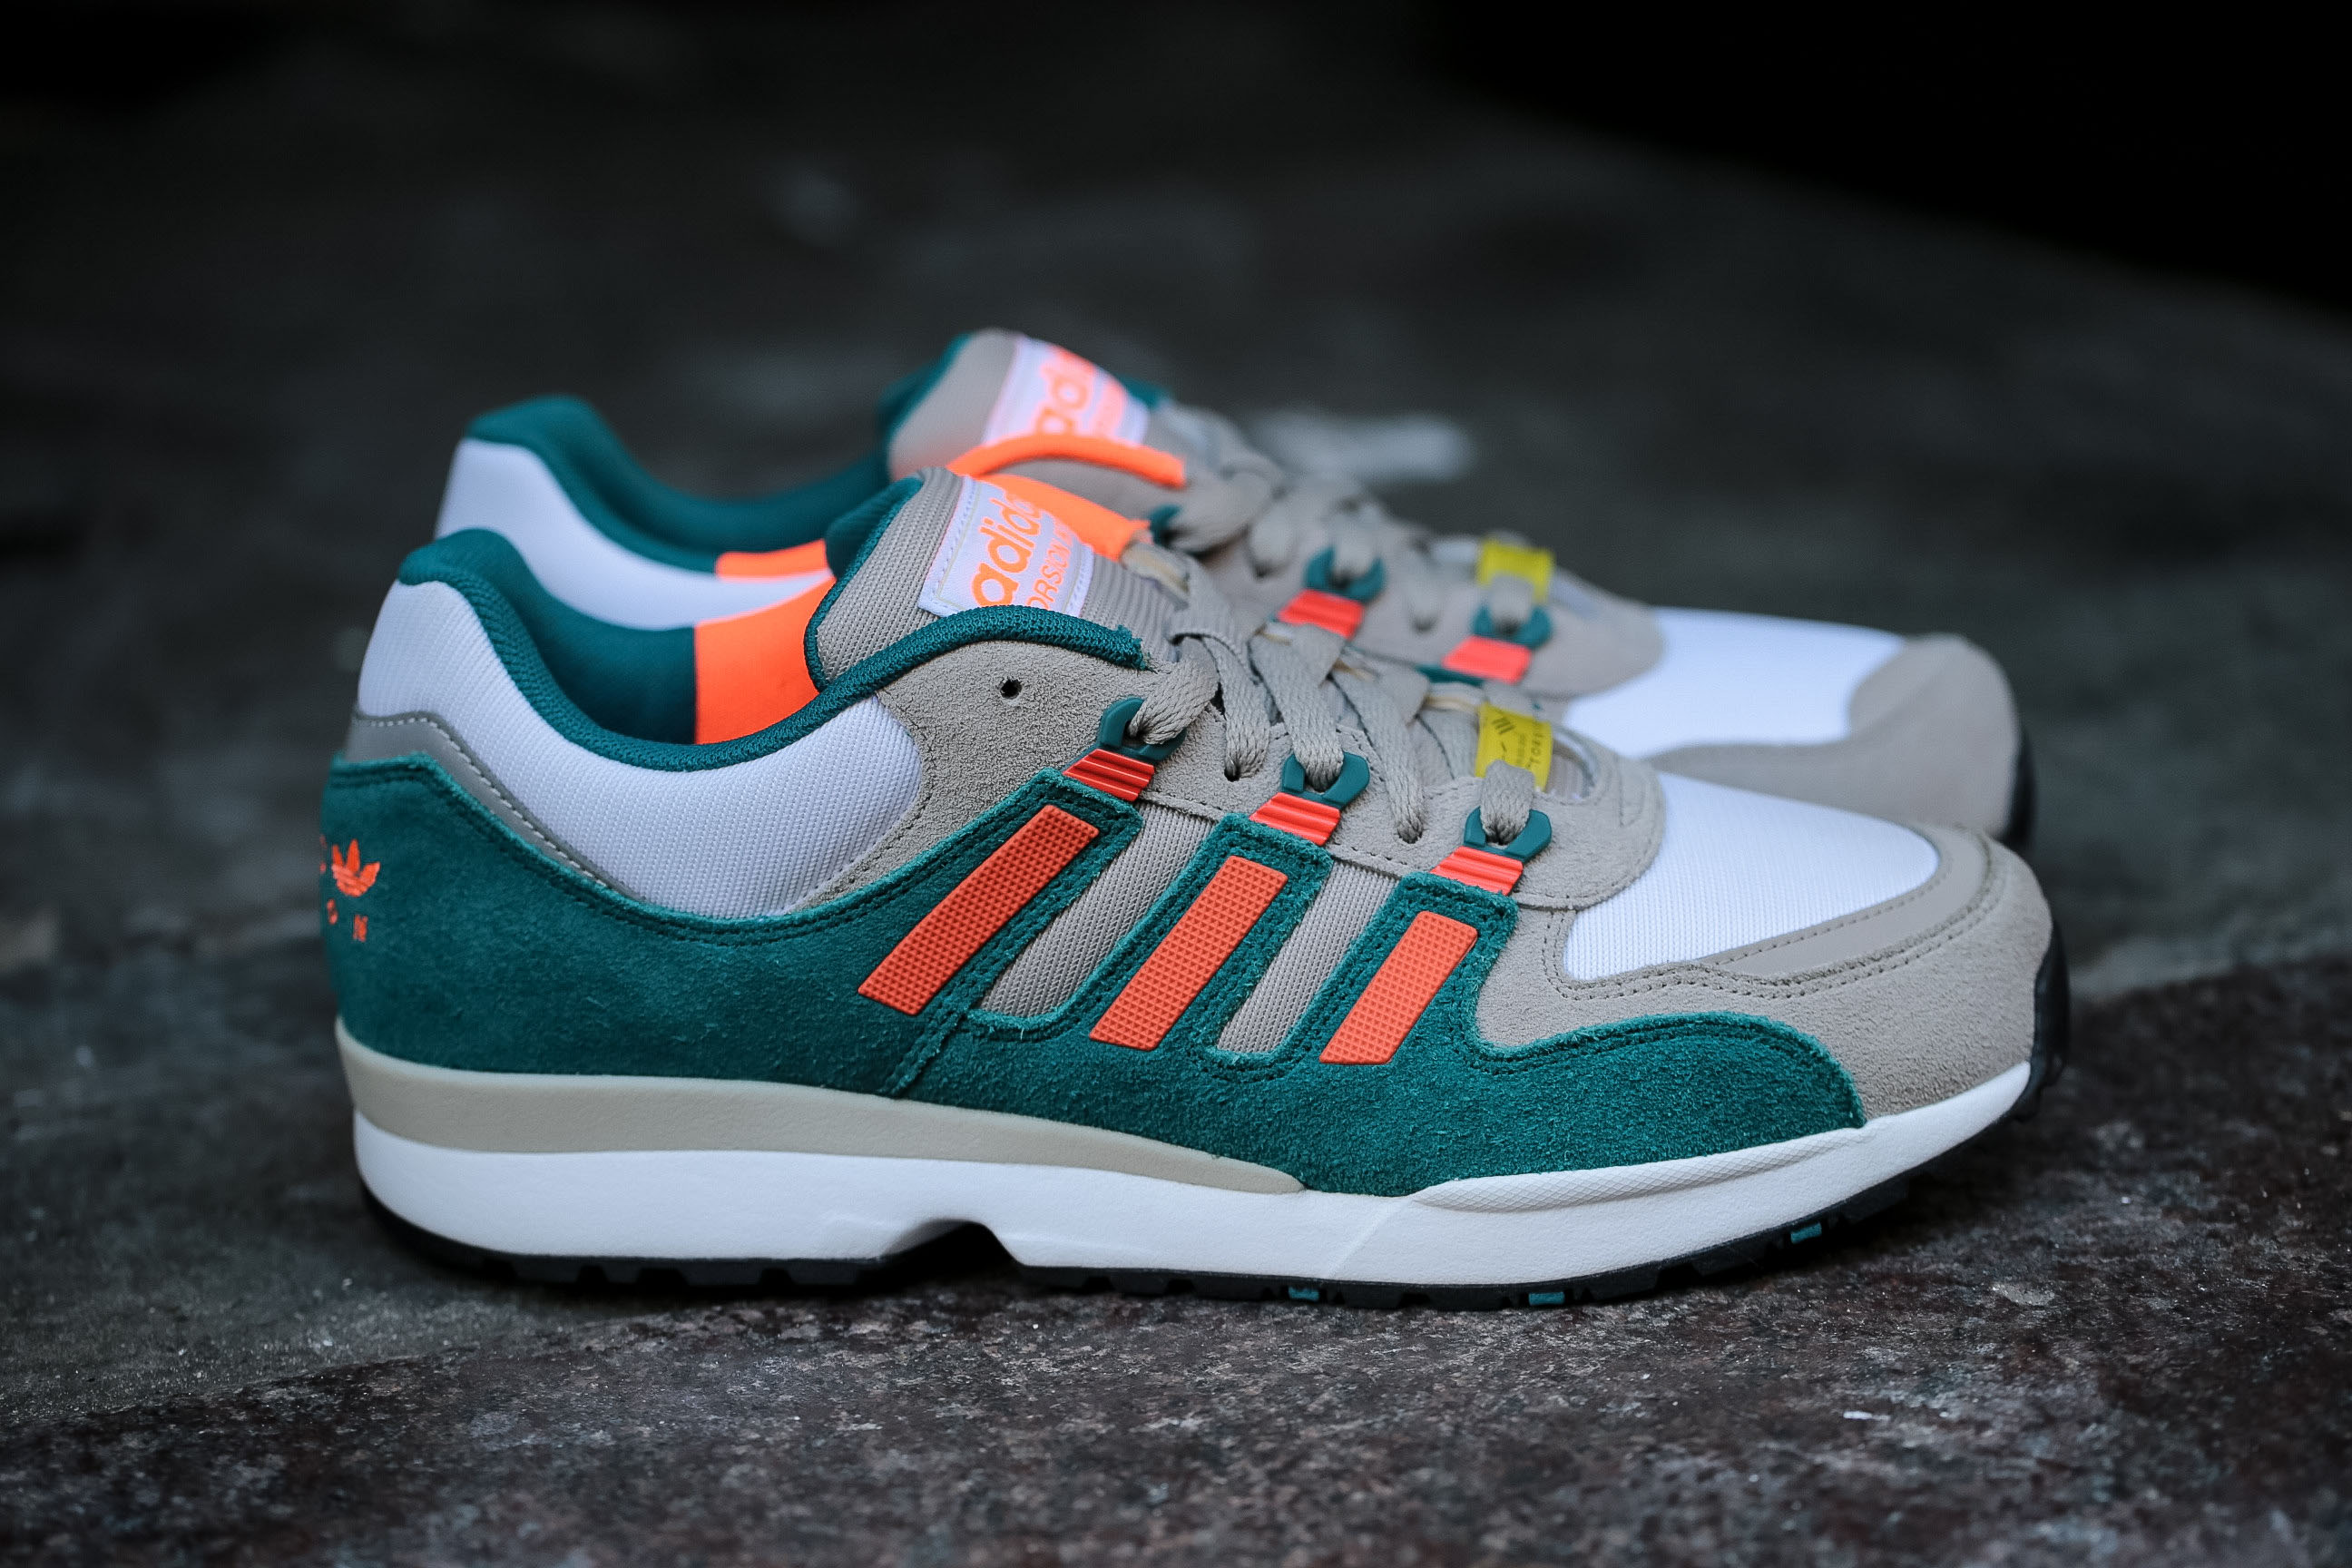 buy online df86f ea555 adidas Originals Torsion Integral S - Running White / Warning / Big Sur